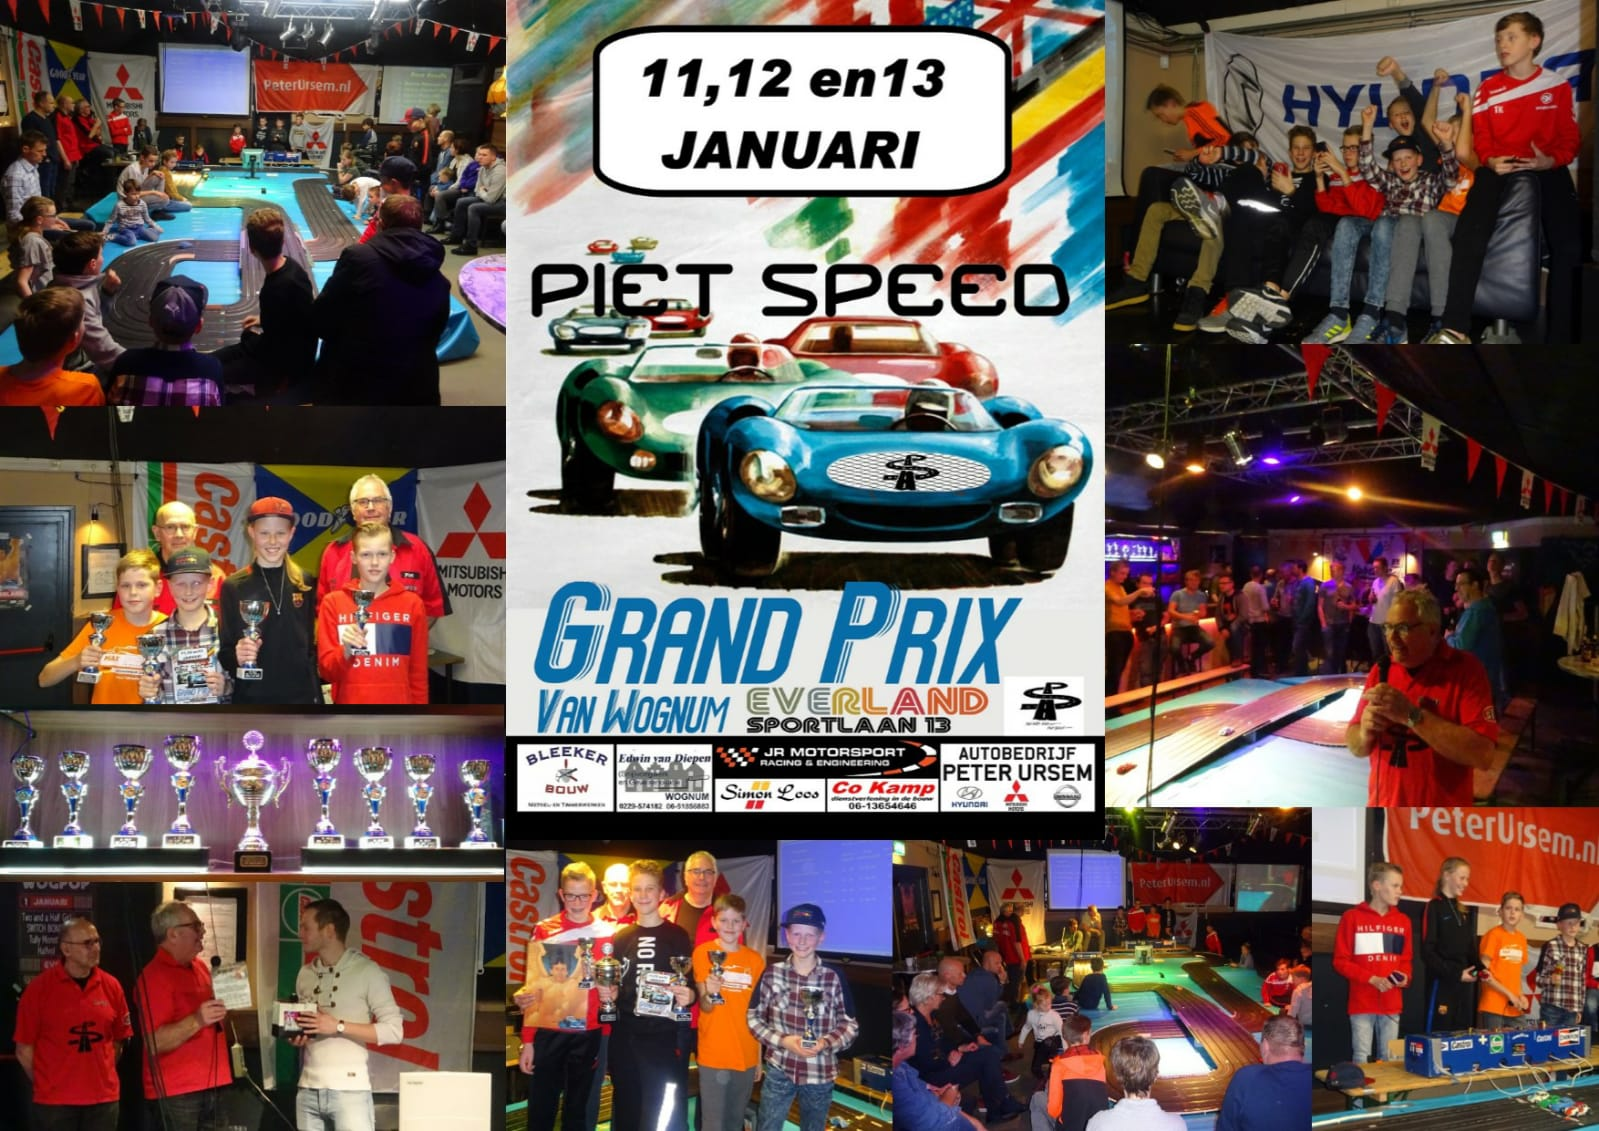 Foto collage van de Grand Prix van Wognum, gemaakt door JC Everland